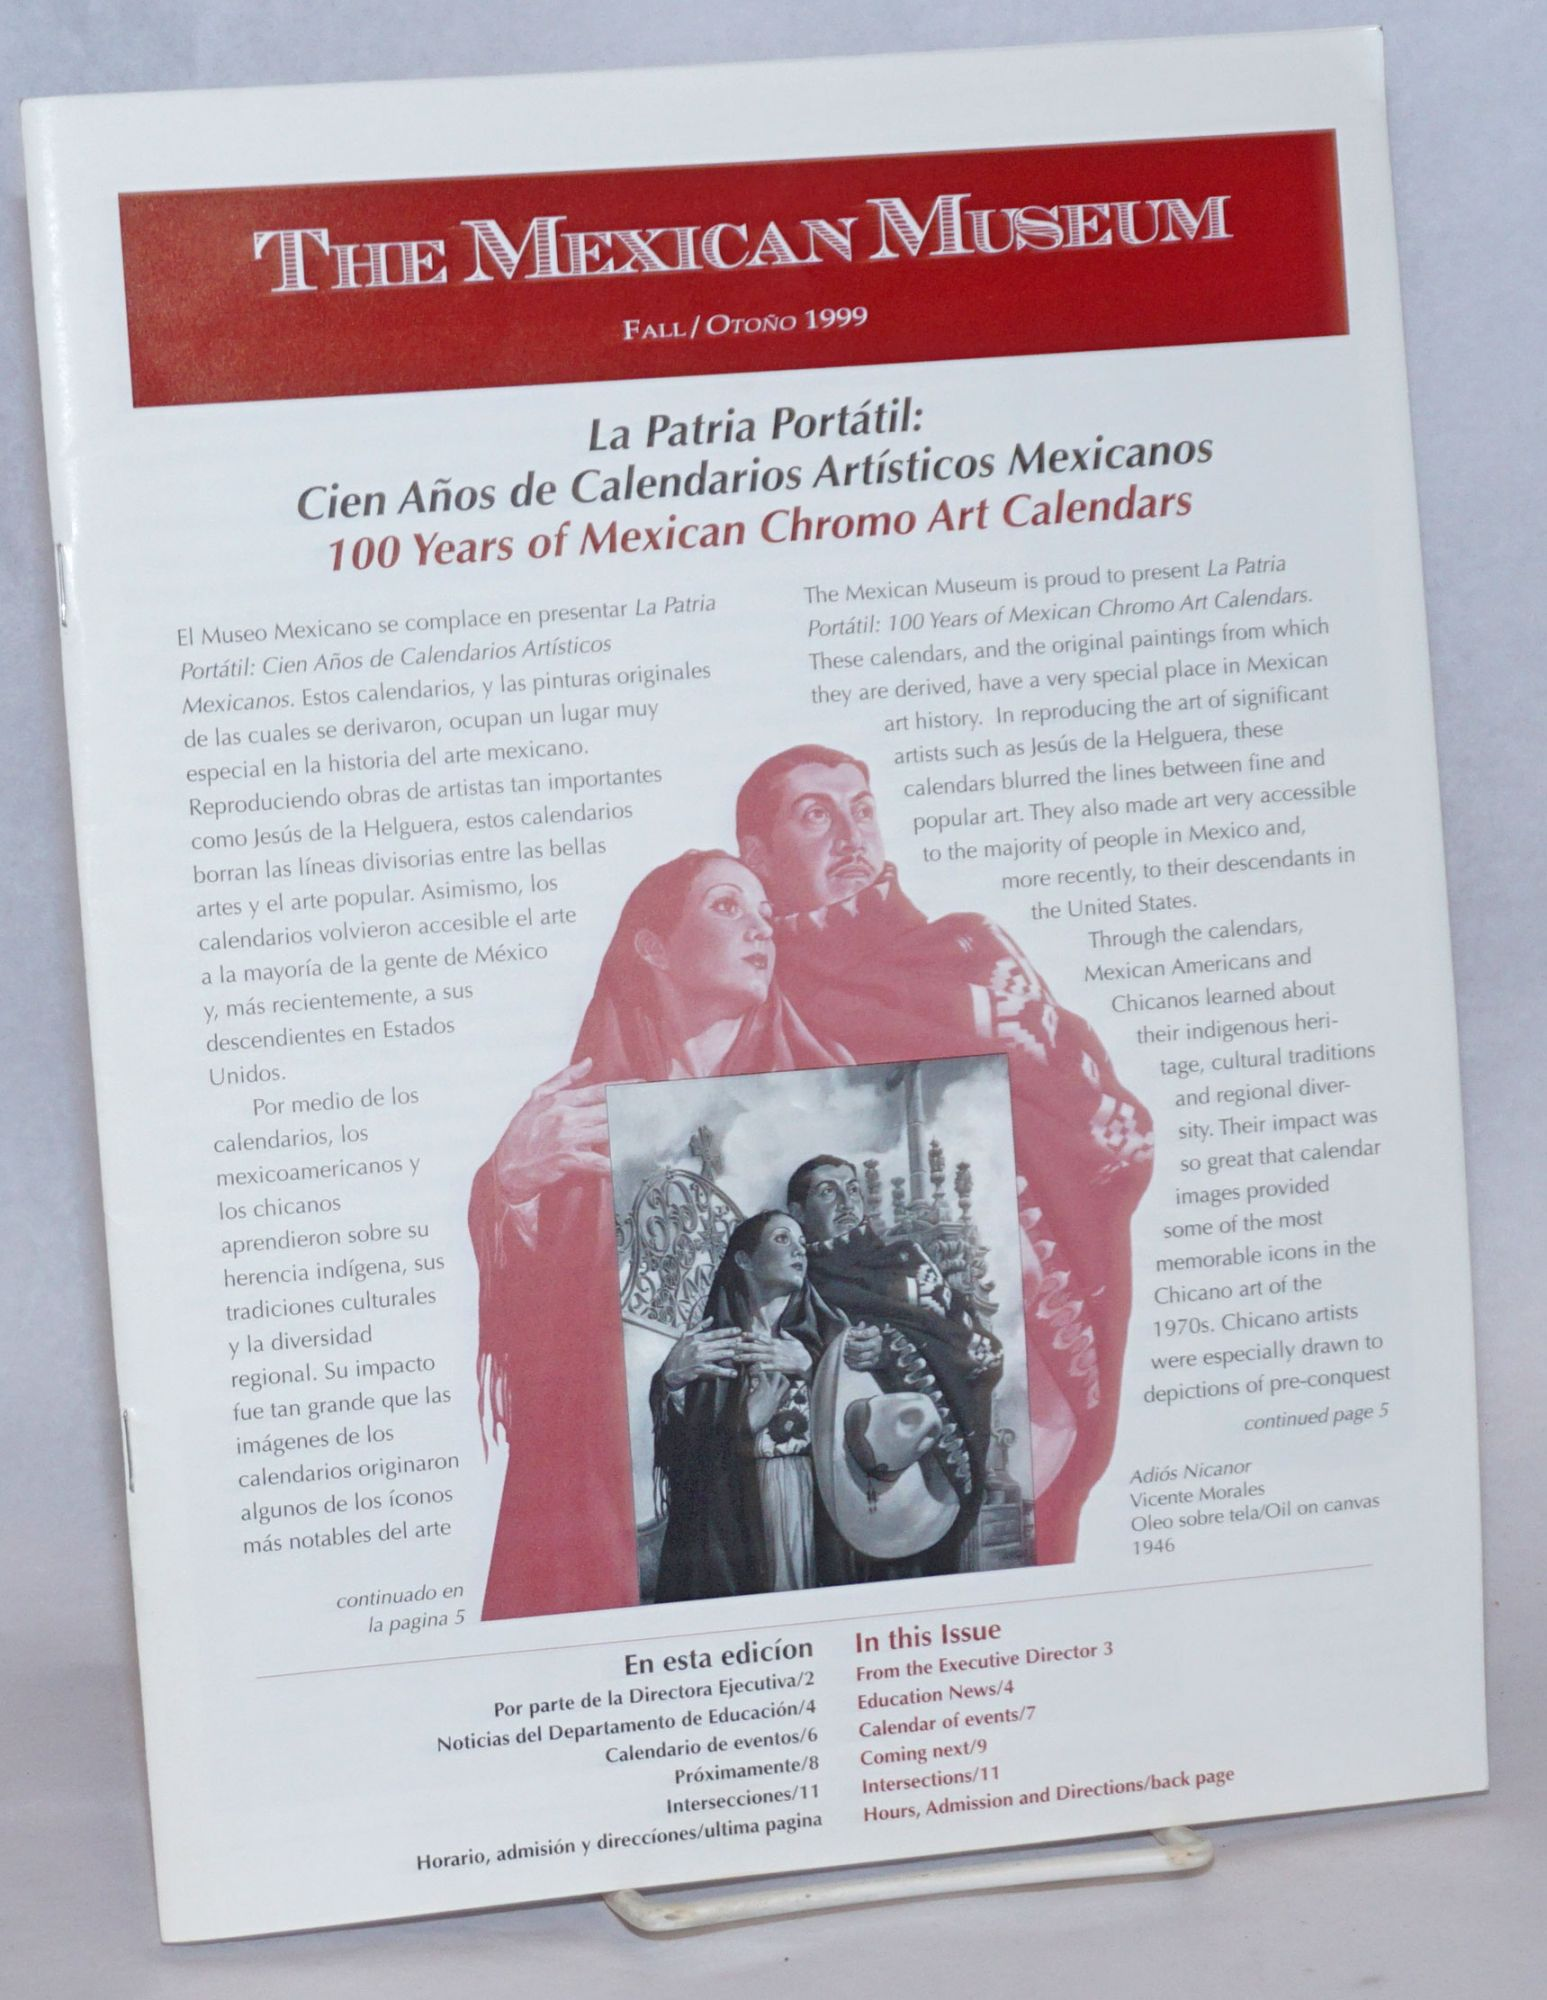 Calendario 1946.The Mexican Museum Fall Otono 1999 La Patria Portatil Cien Anos De Calendarios Artisticos Mexicanos 100 Years Of Mexican Chromo Art Calendars On